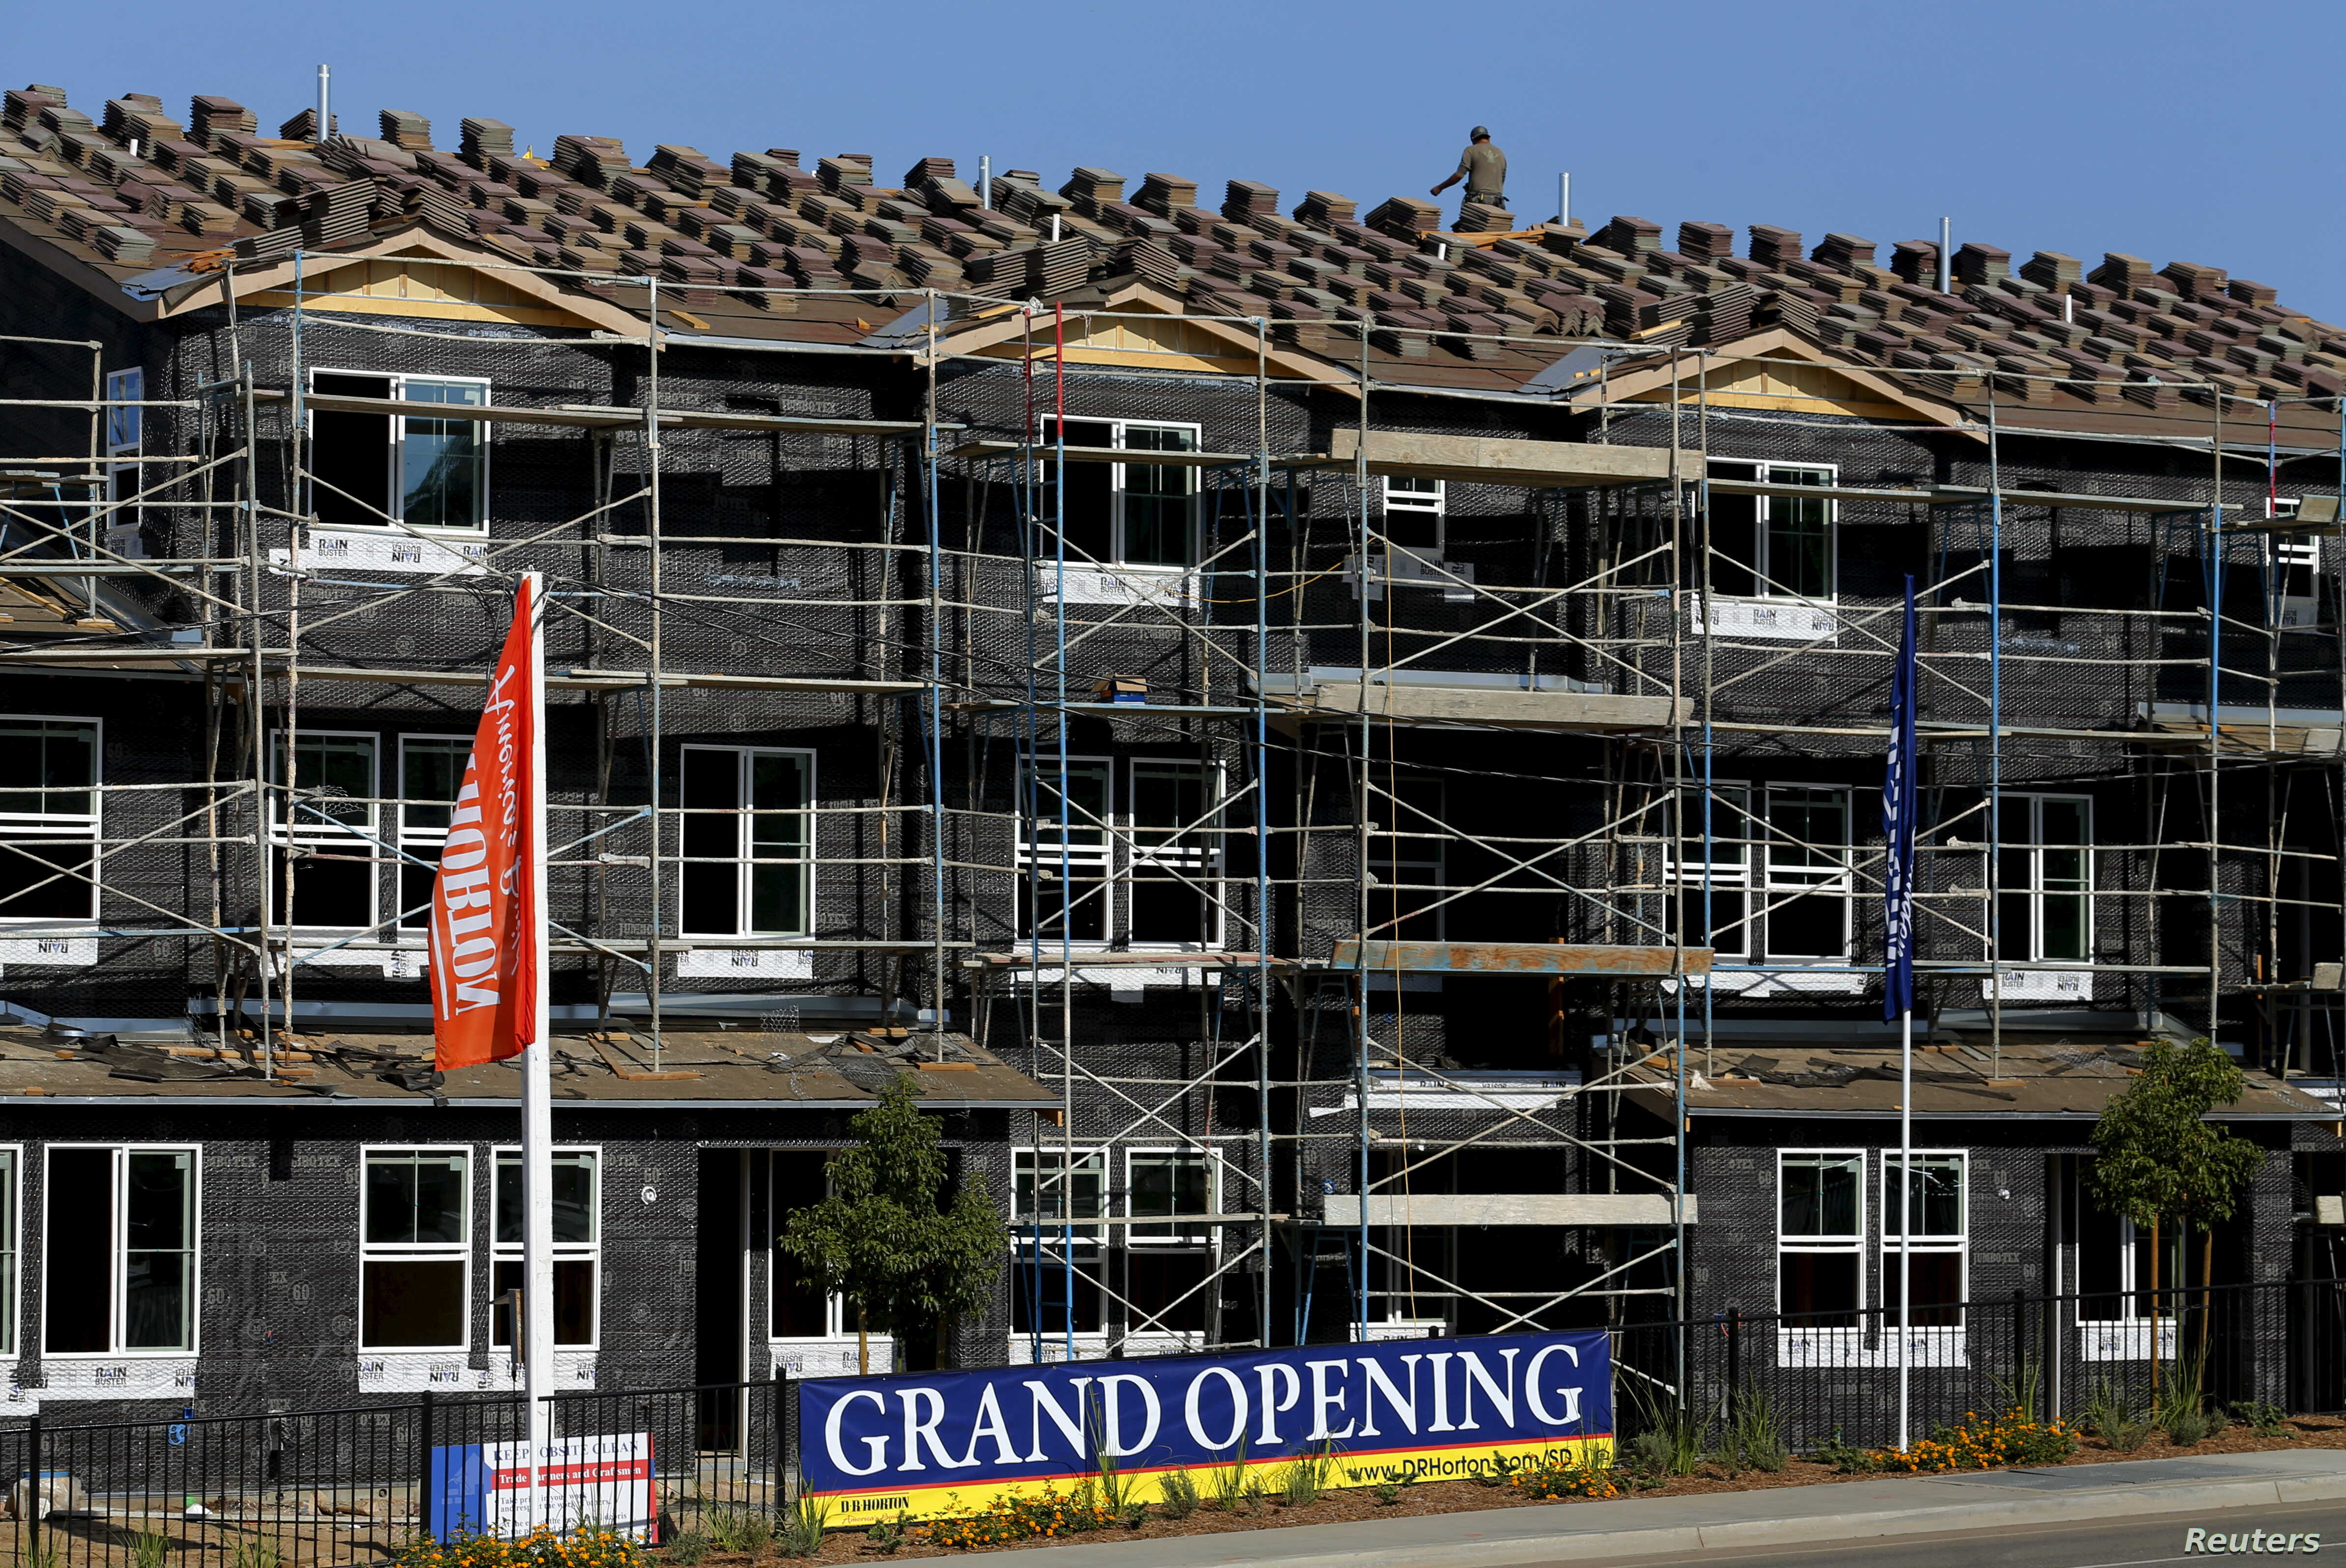 FILE - U.S. housing market continues recovery, with foreclosures in September down sharply from the same period a year earlier. D.R. Horton home building project  in San Marcos, California July 28, 2015.